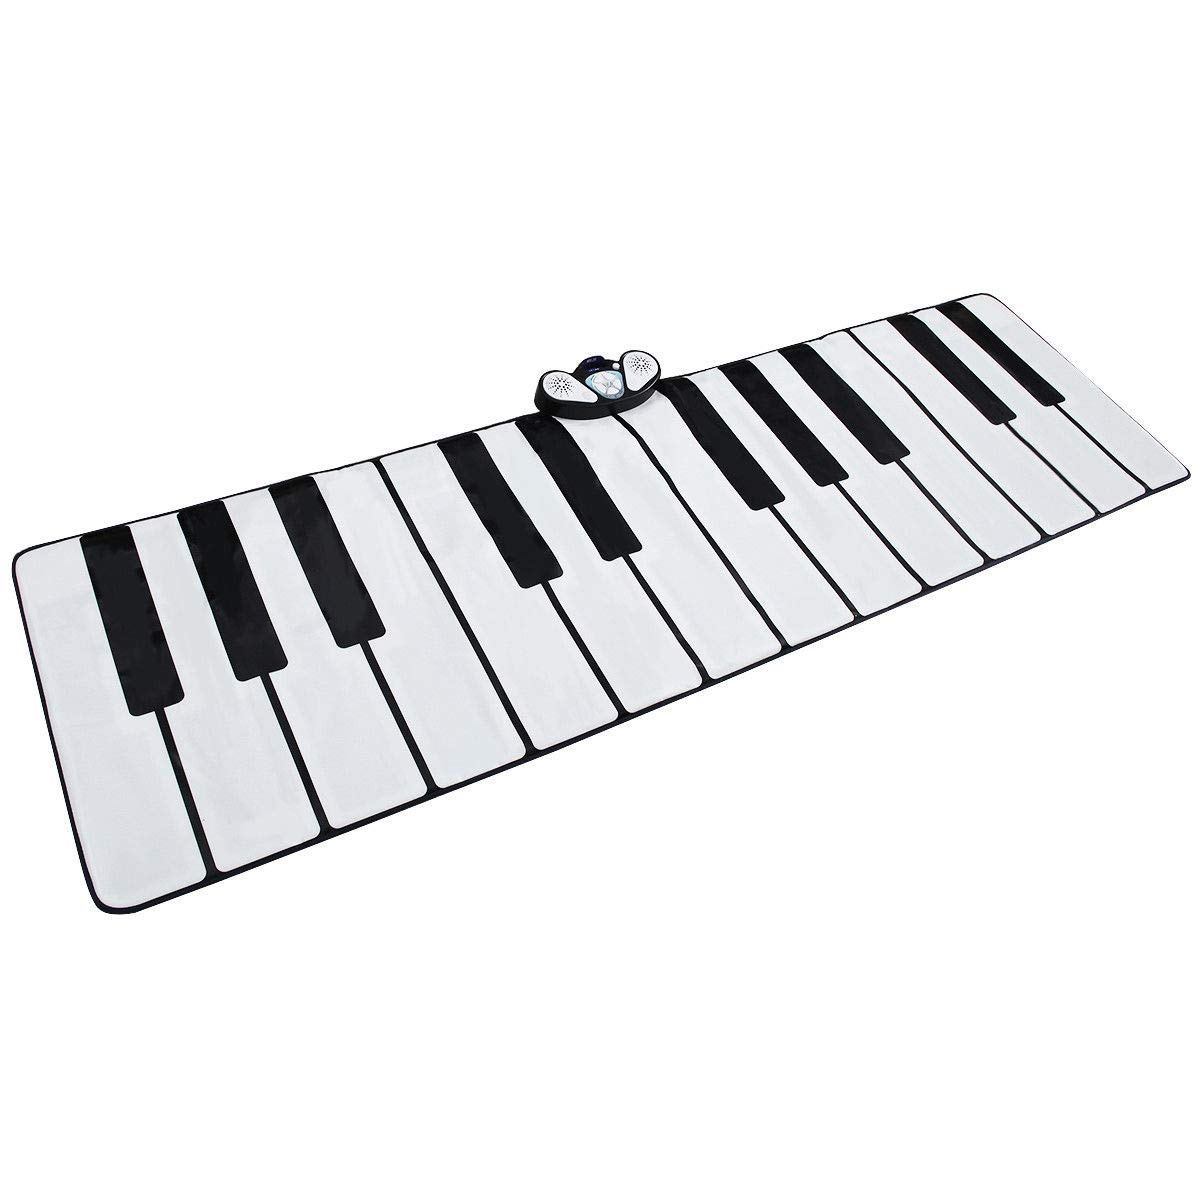 FDInspiration 24-Key Kids Keyboard Dance Gigantic Piano Playmat w/ Cable with Ebook